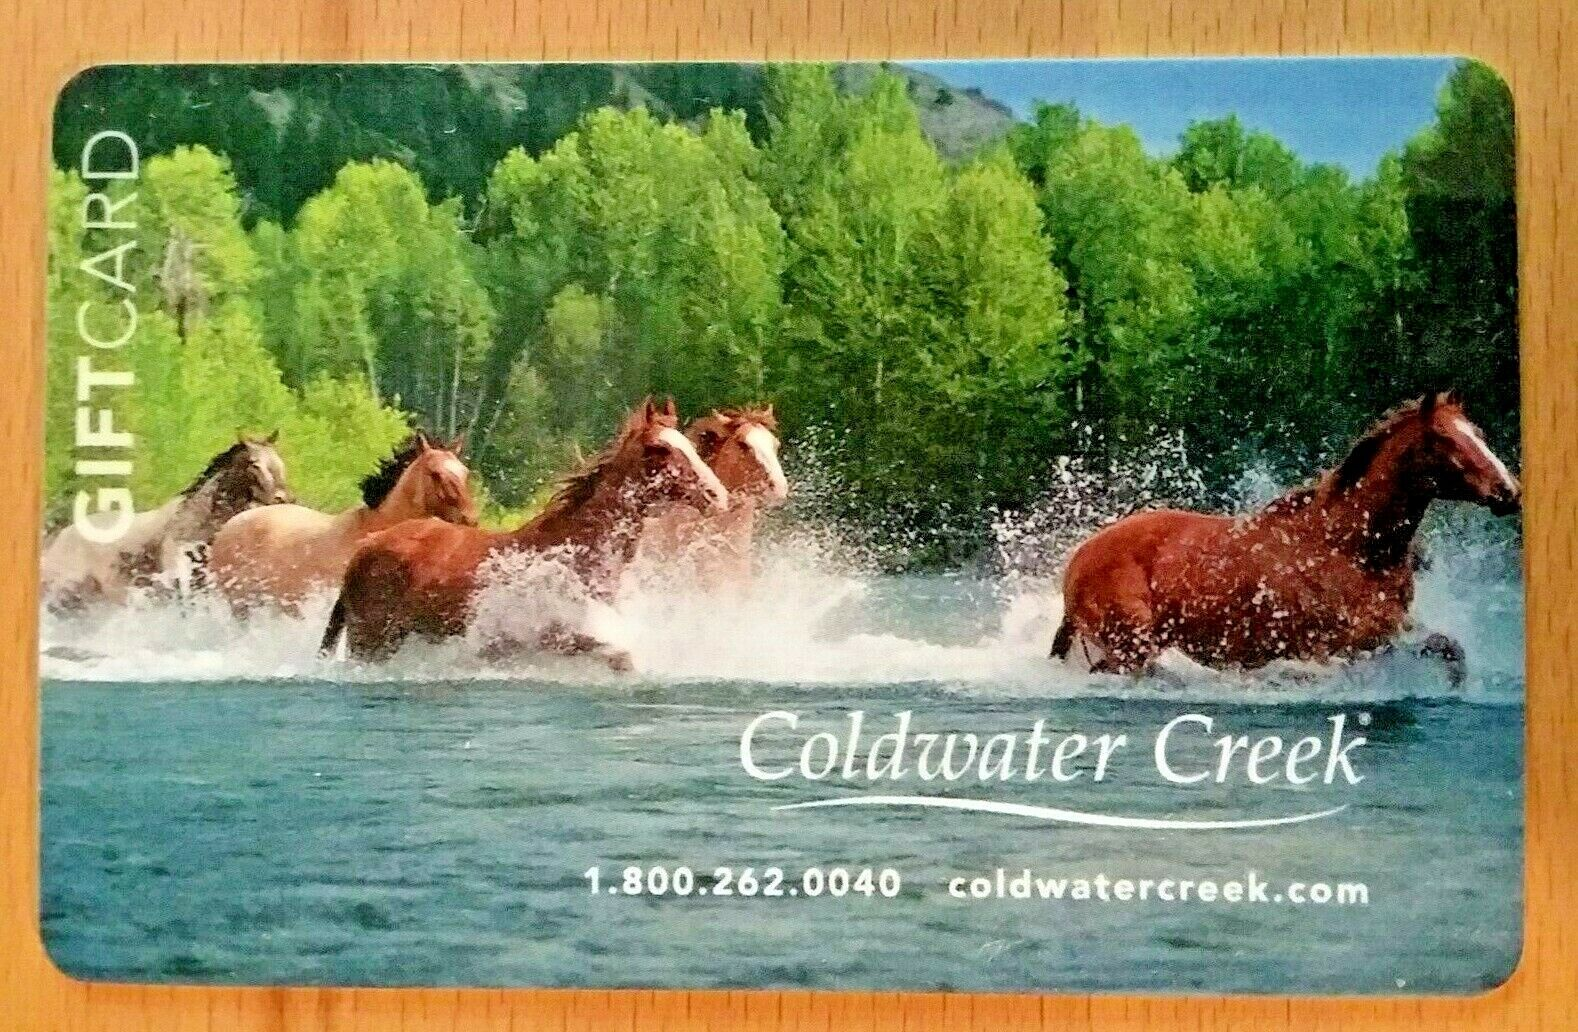 COLDWATER CREEK HERD OF HORSES Gift Card No Value - $1.99